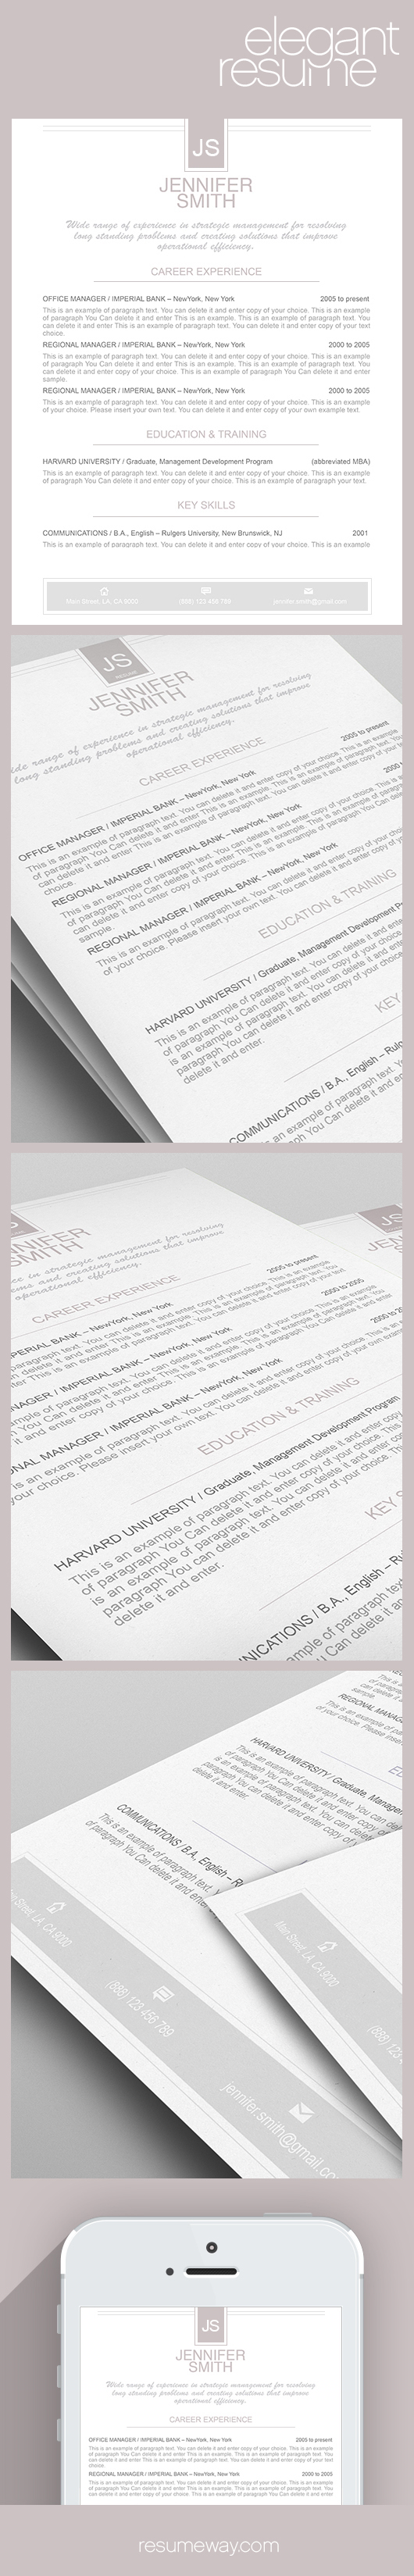 elegant resume template 110440